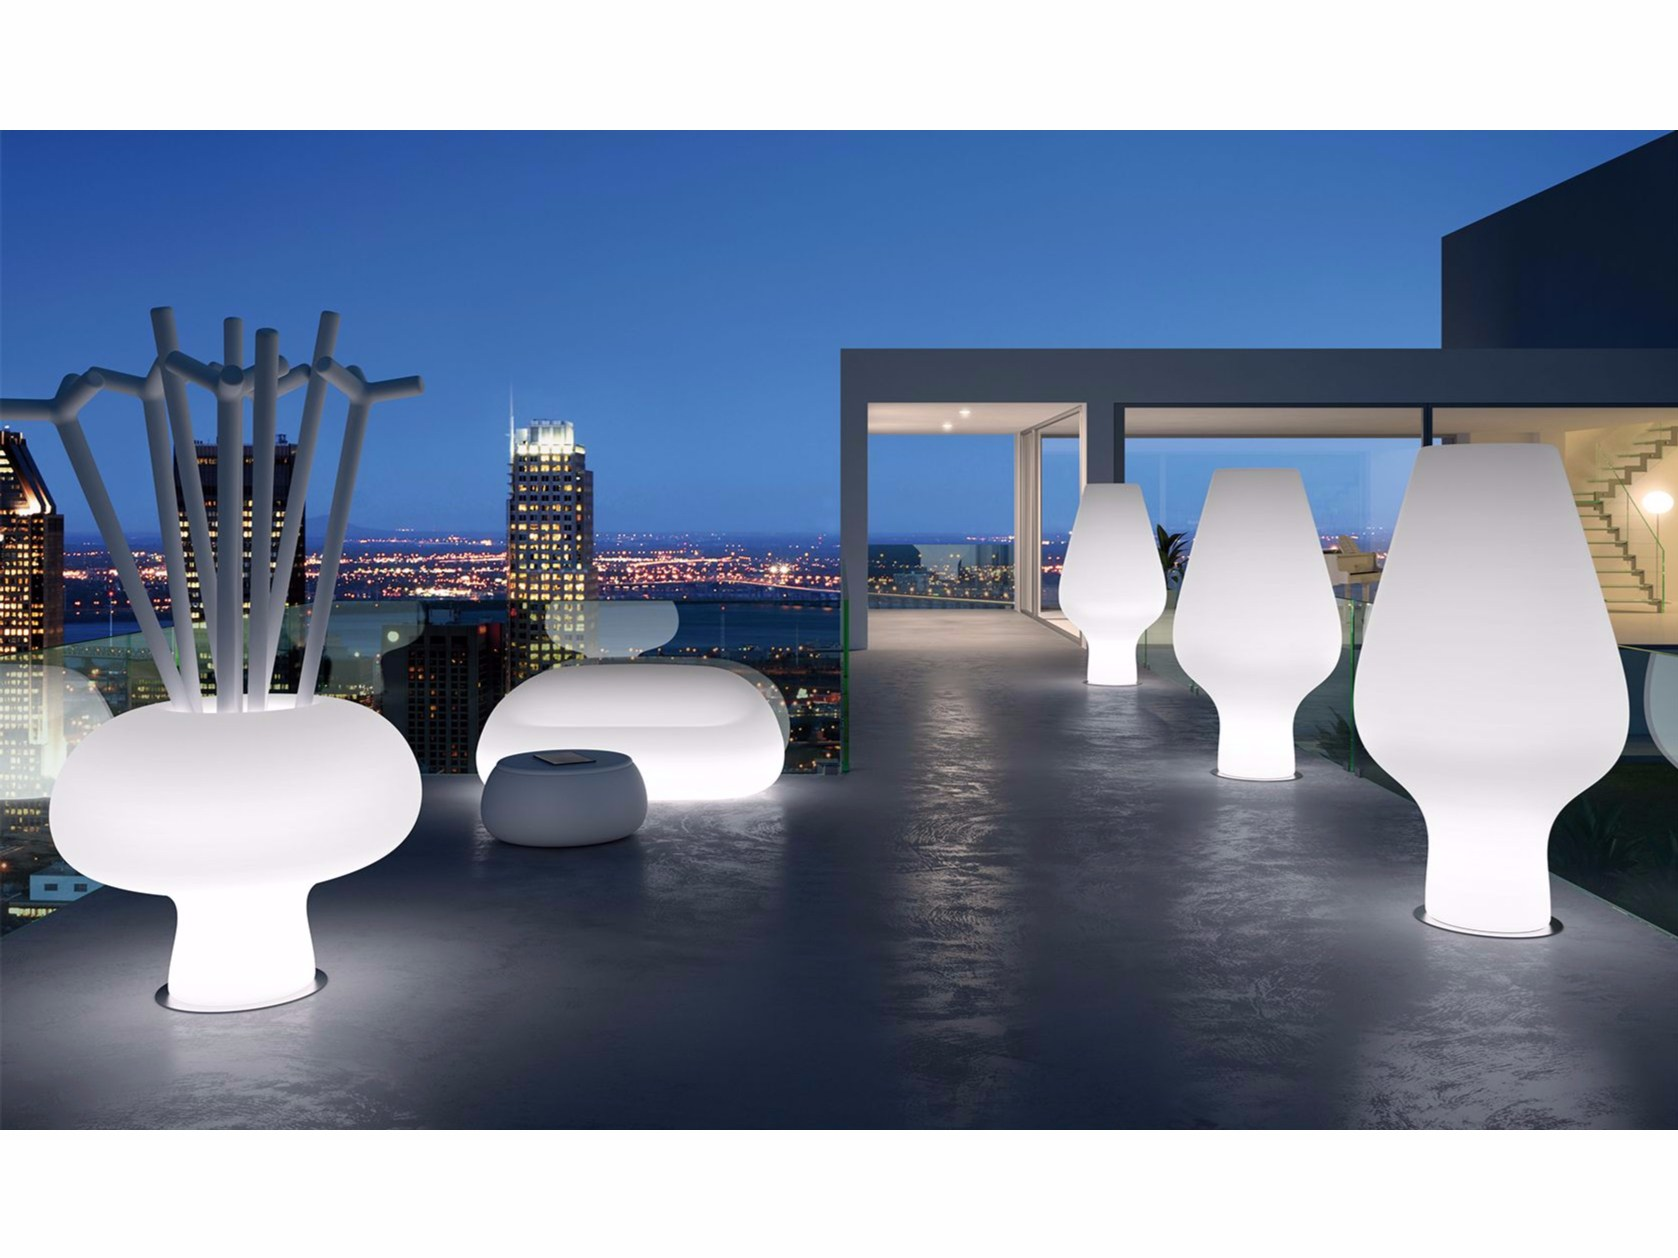 Polypropylene Sofa With Light GUMBALL SOFA LIGHT By Plust Design Alberto  Brogliato